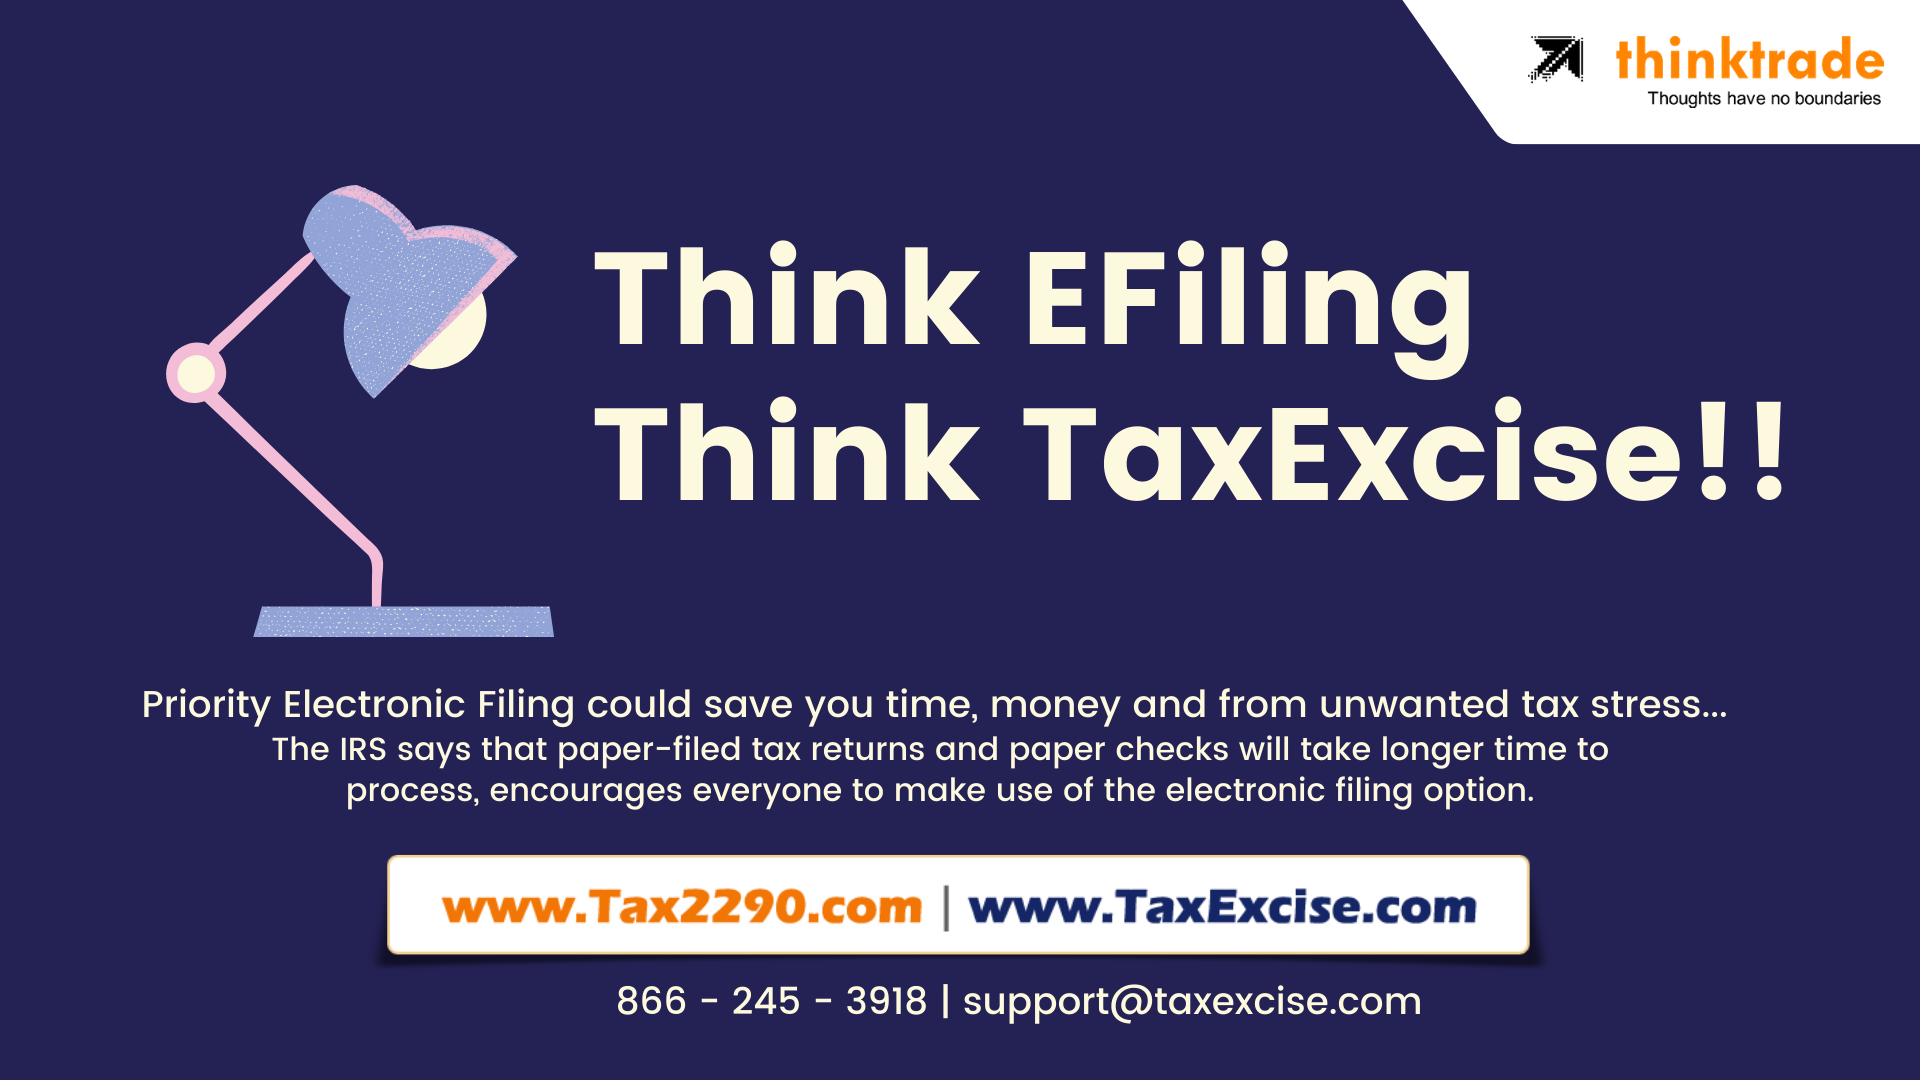 think efiling think taxexcise